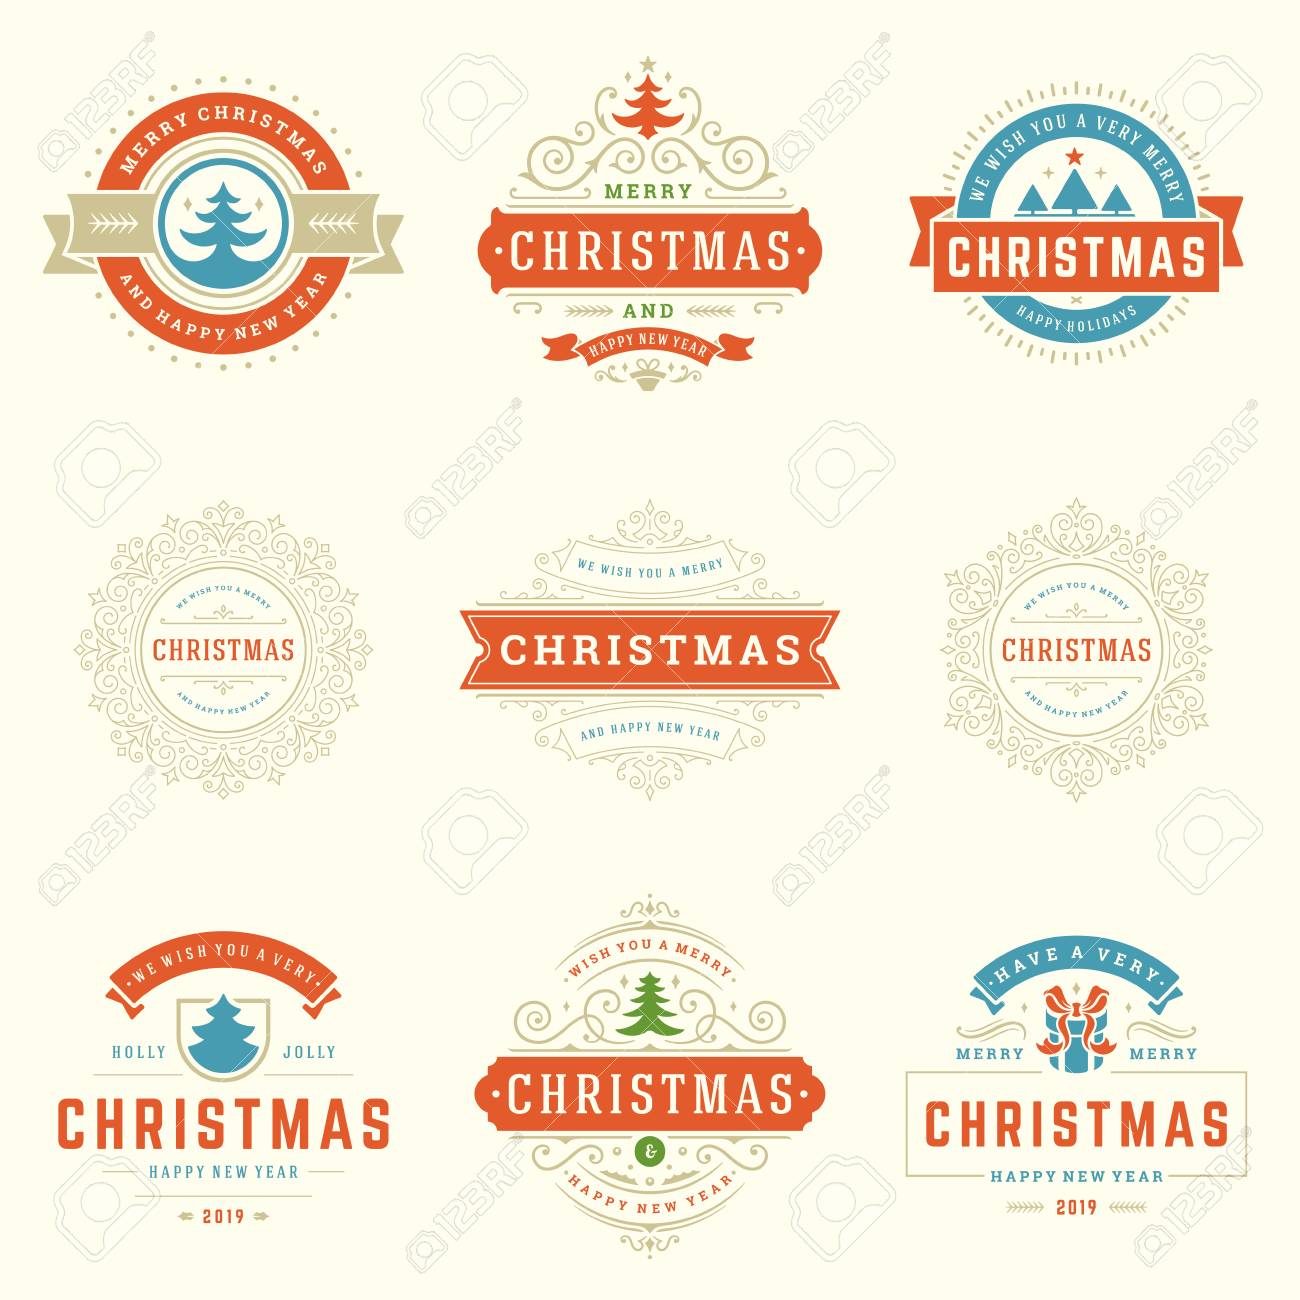 Merry Christmas Labels.Christmas Labels And Badges Vector Design Elements Set Merry